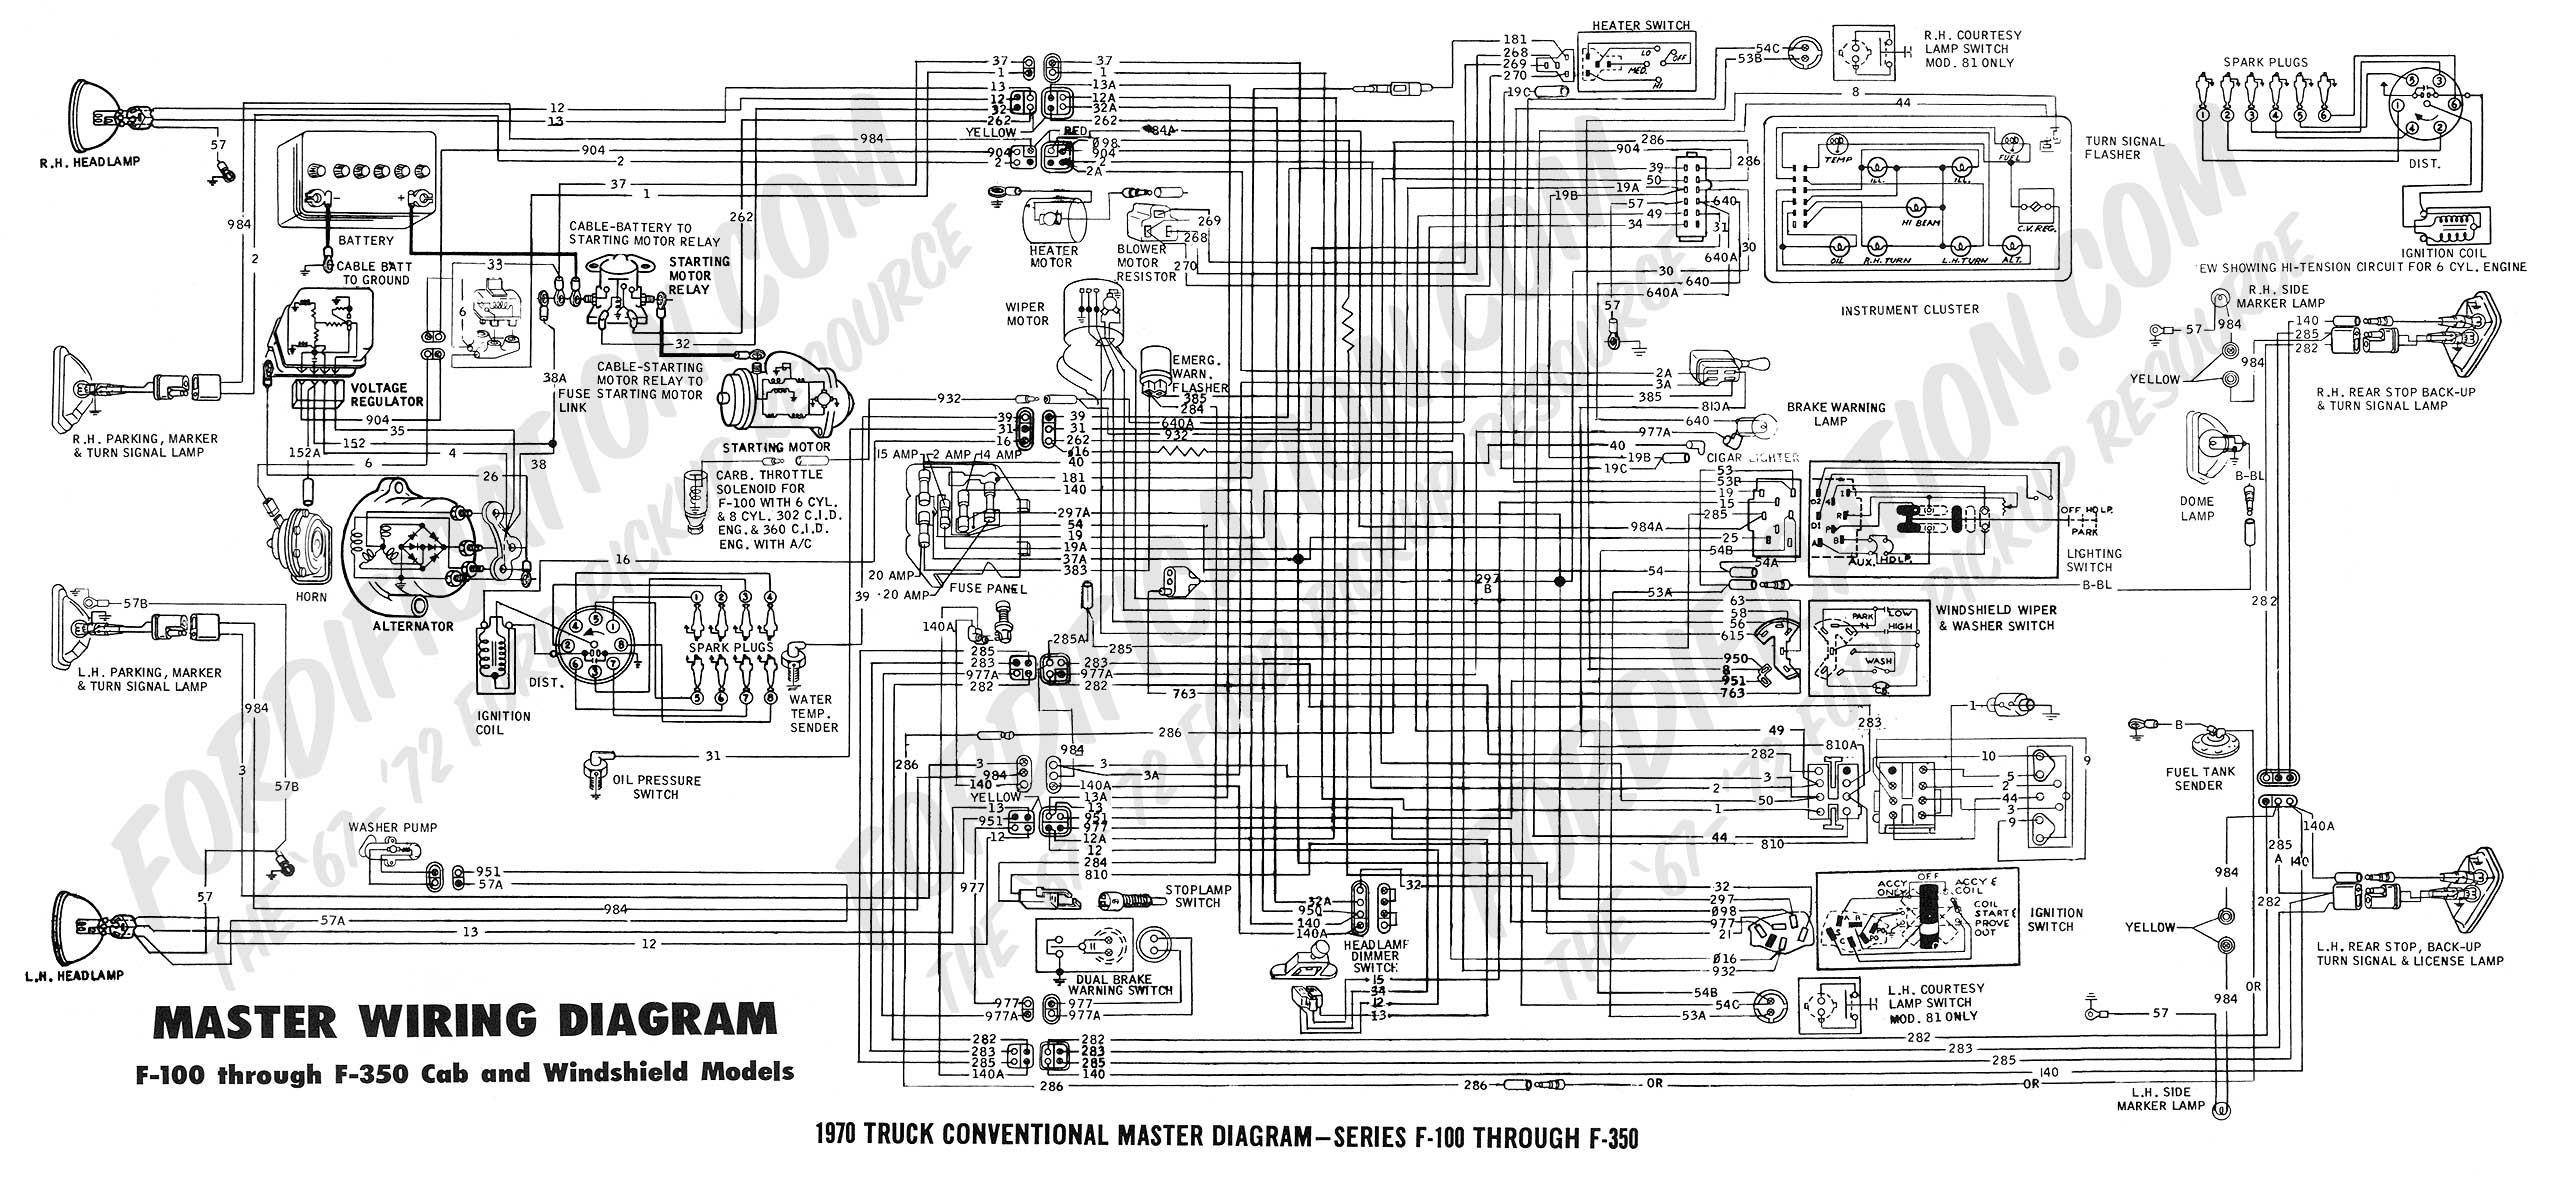 wiring diagram 70_master ford truck technical drawings and schematics section h wiring 1999 Ford Expedition Problems at alyssarenee.co